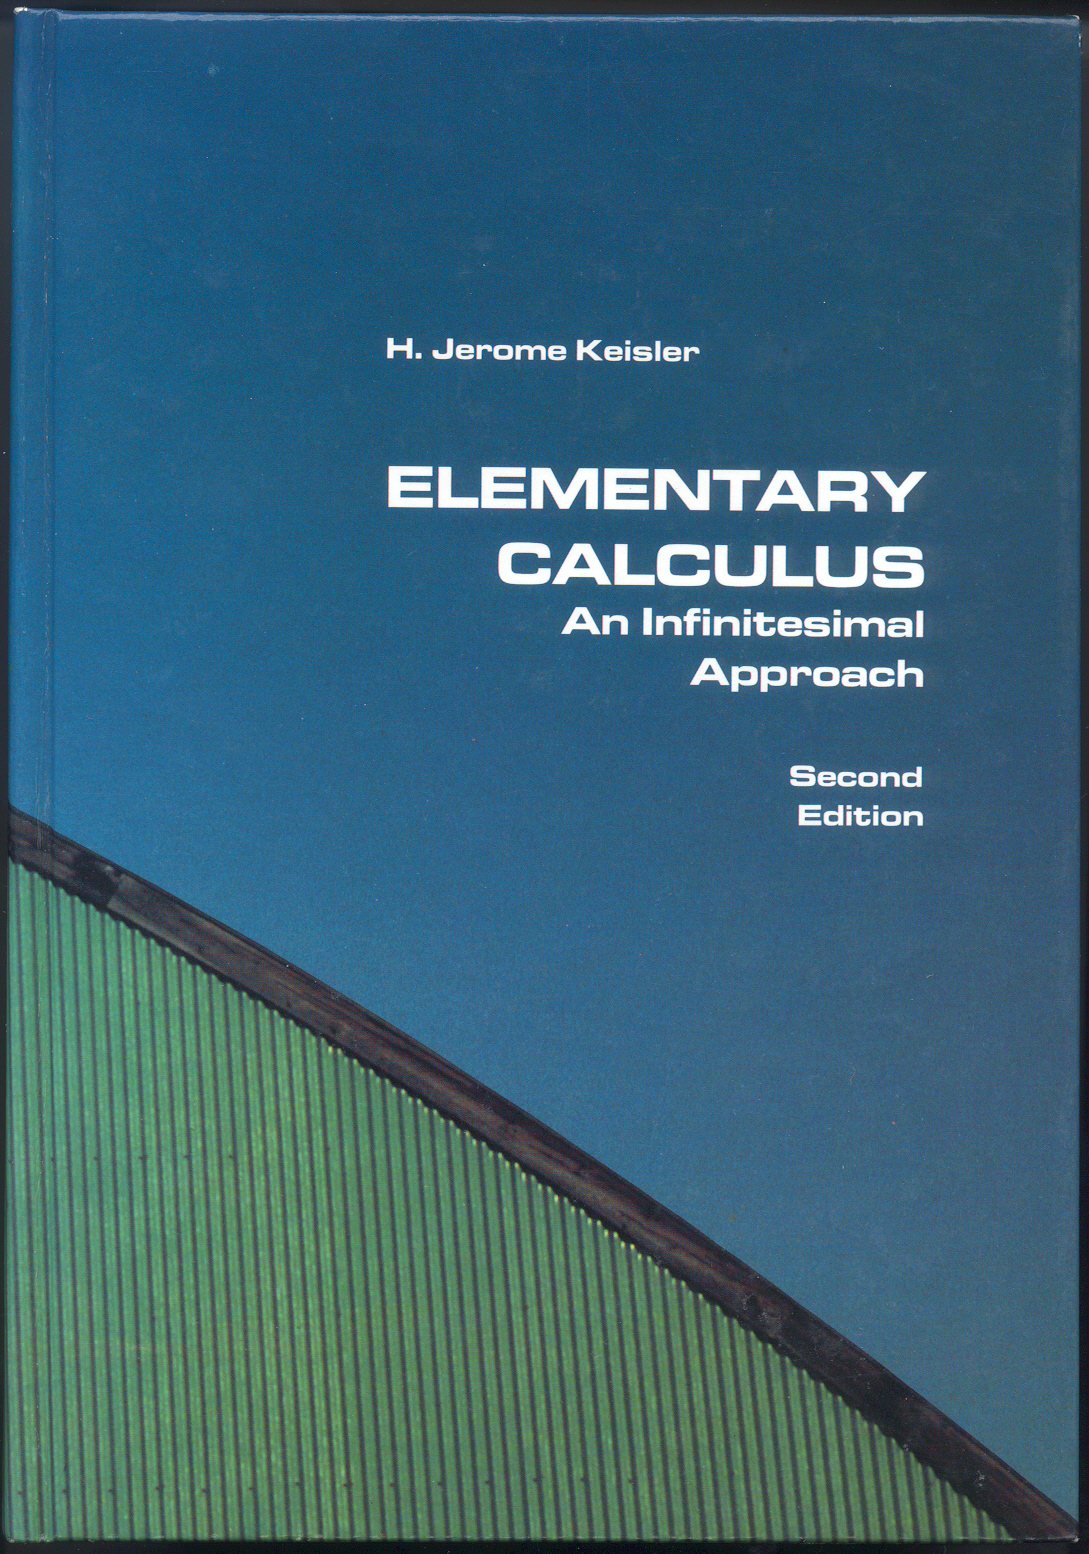 Geometry ebook download and analytic calculus